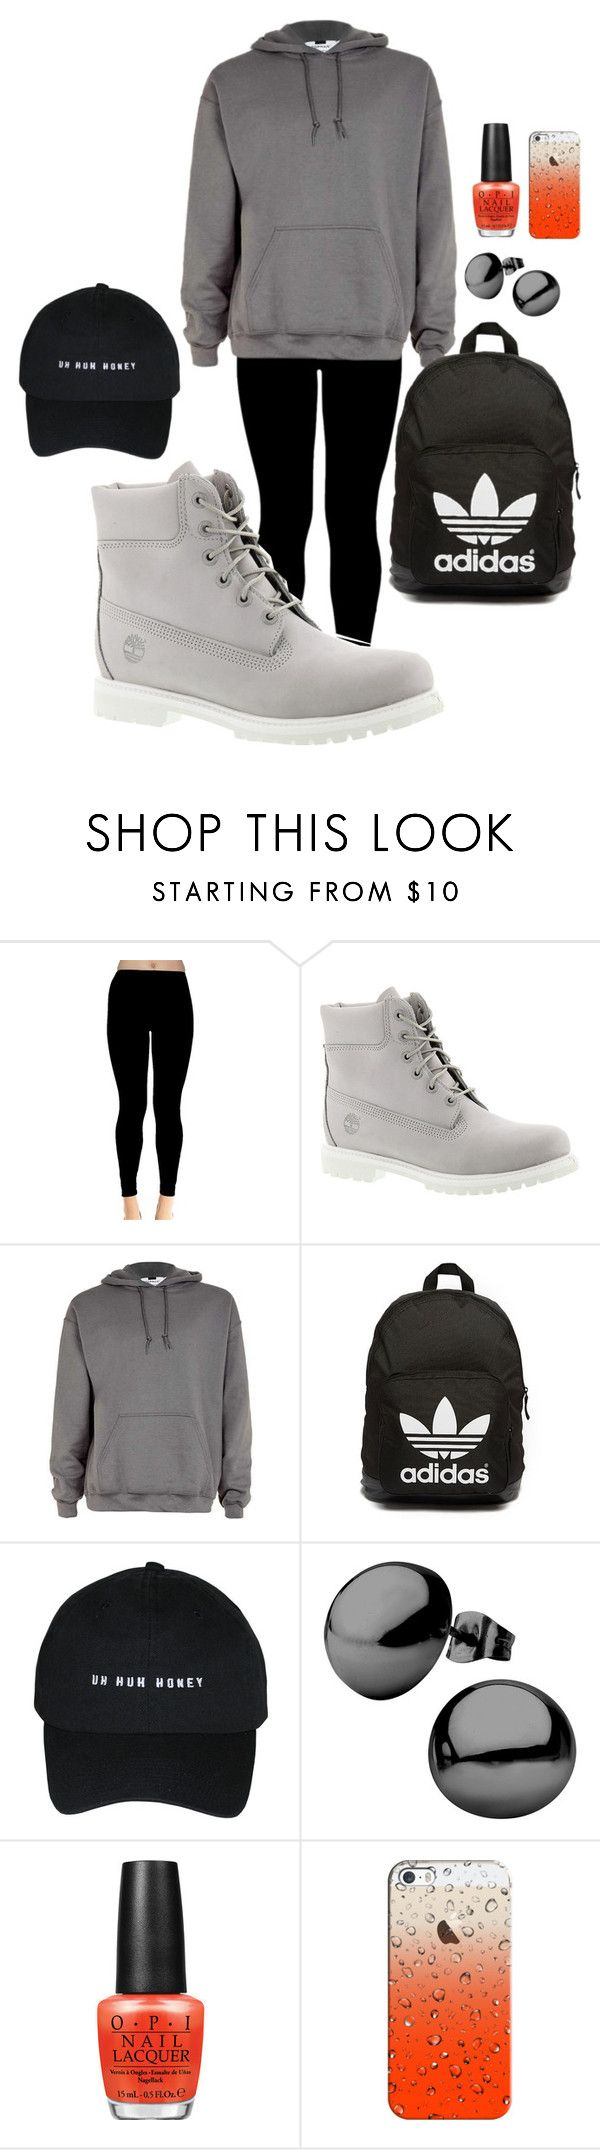 """Airport-Fashion (Jungkook Style)"" by parkjimminie ❤ liked on Polyvore featuring Timberland, adidas Originals, OPI and Casetify"